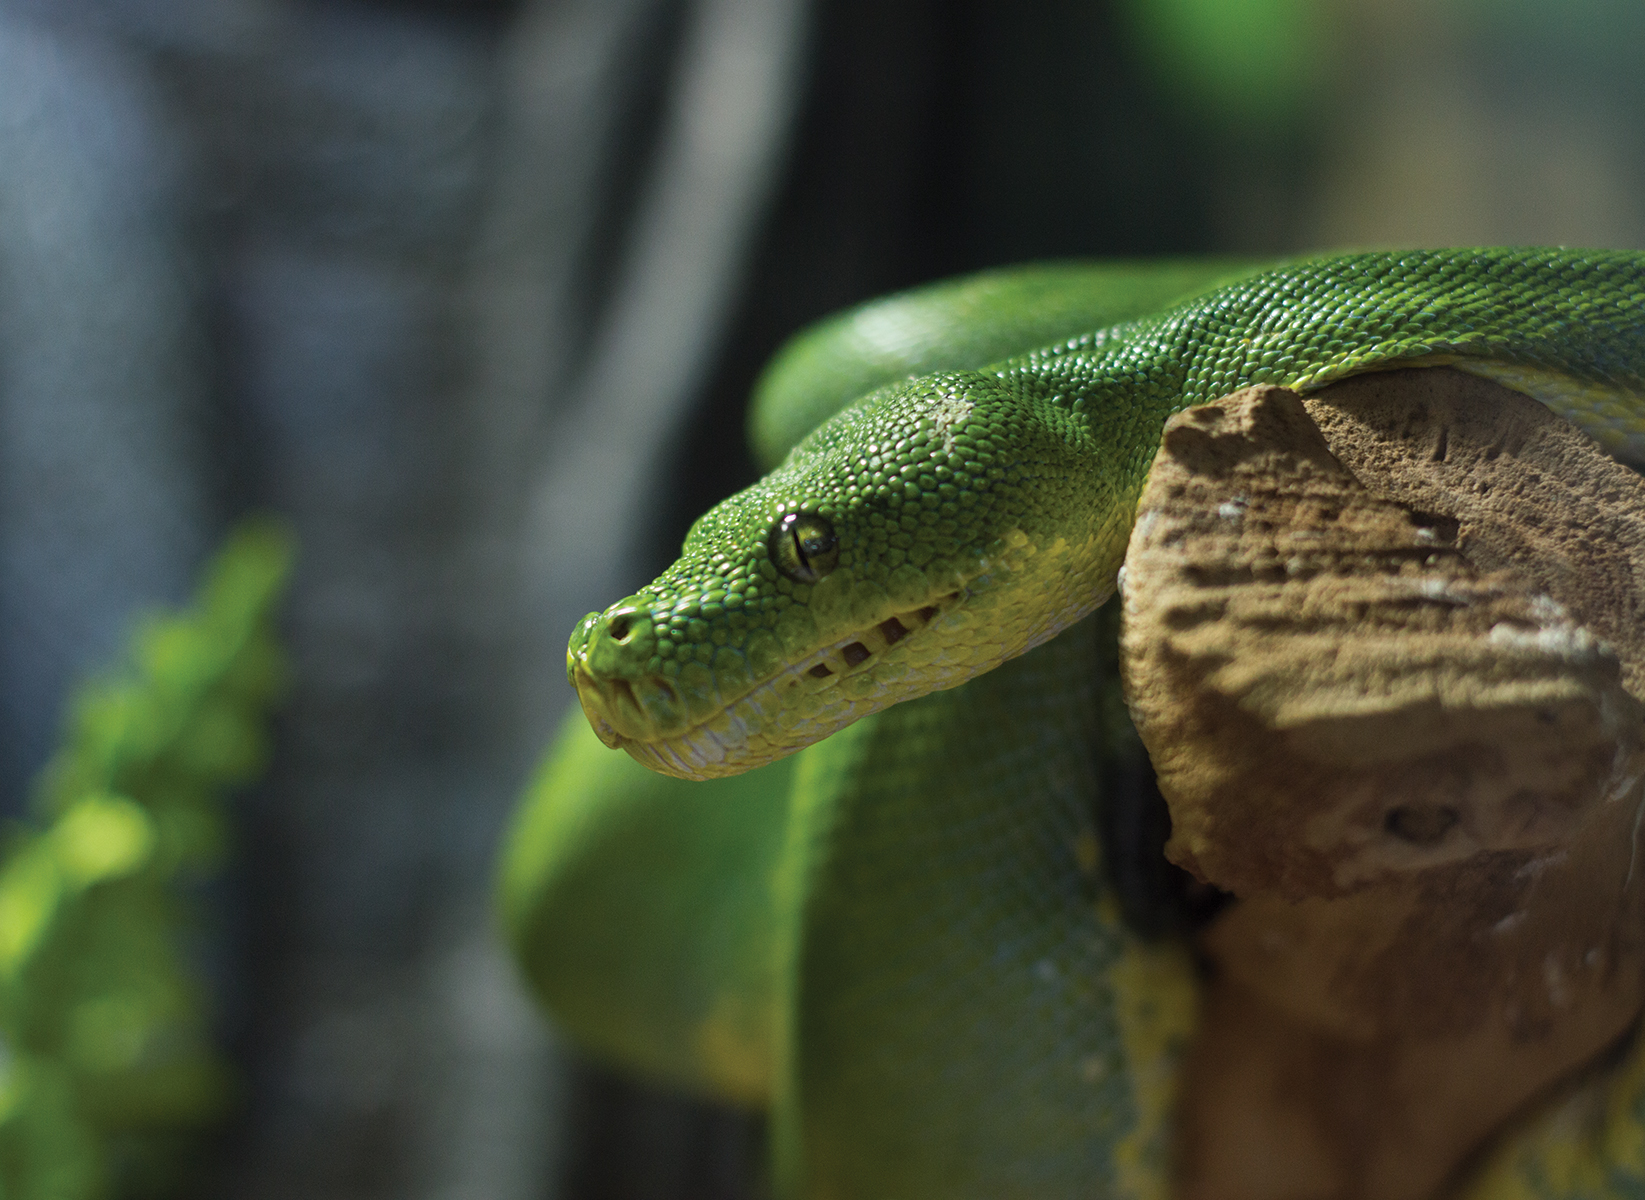 Intense glare of the Green Tree Python. Photo credit: Sean Martens